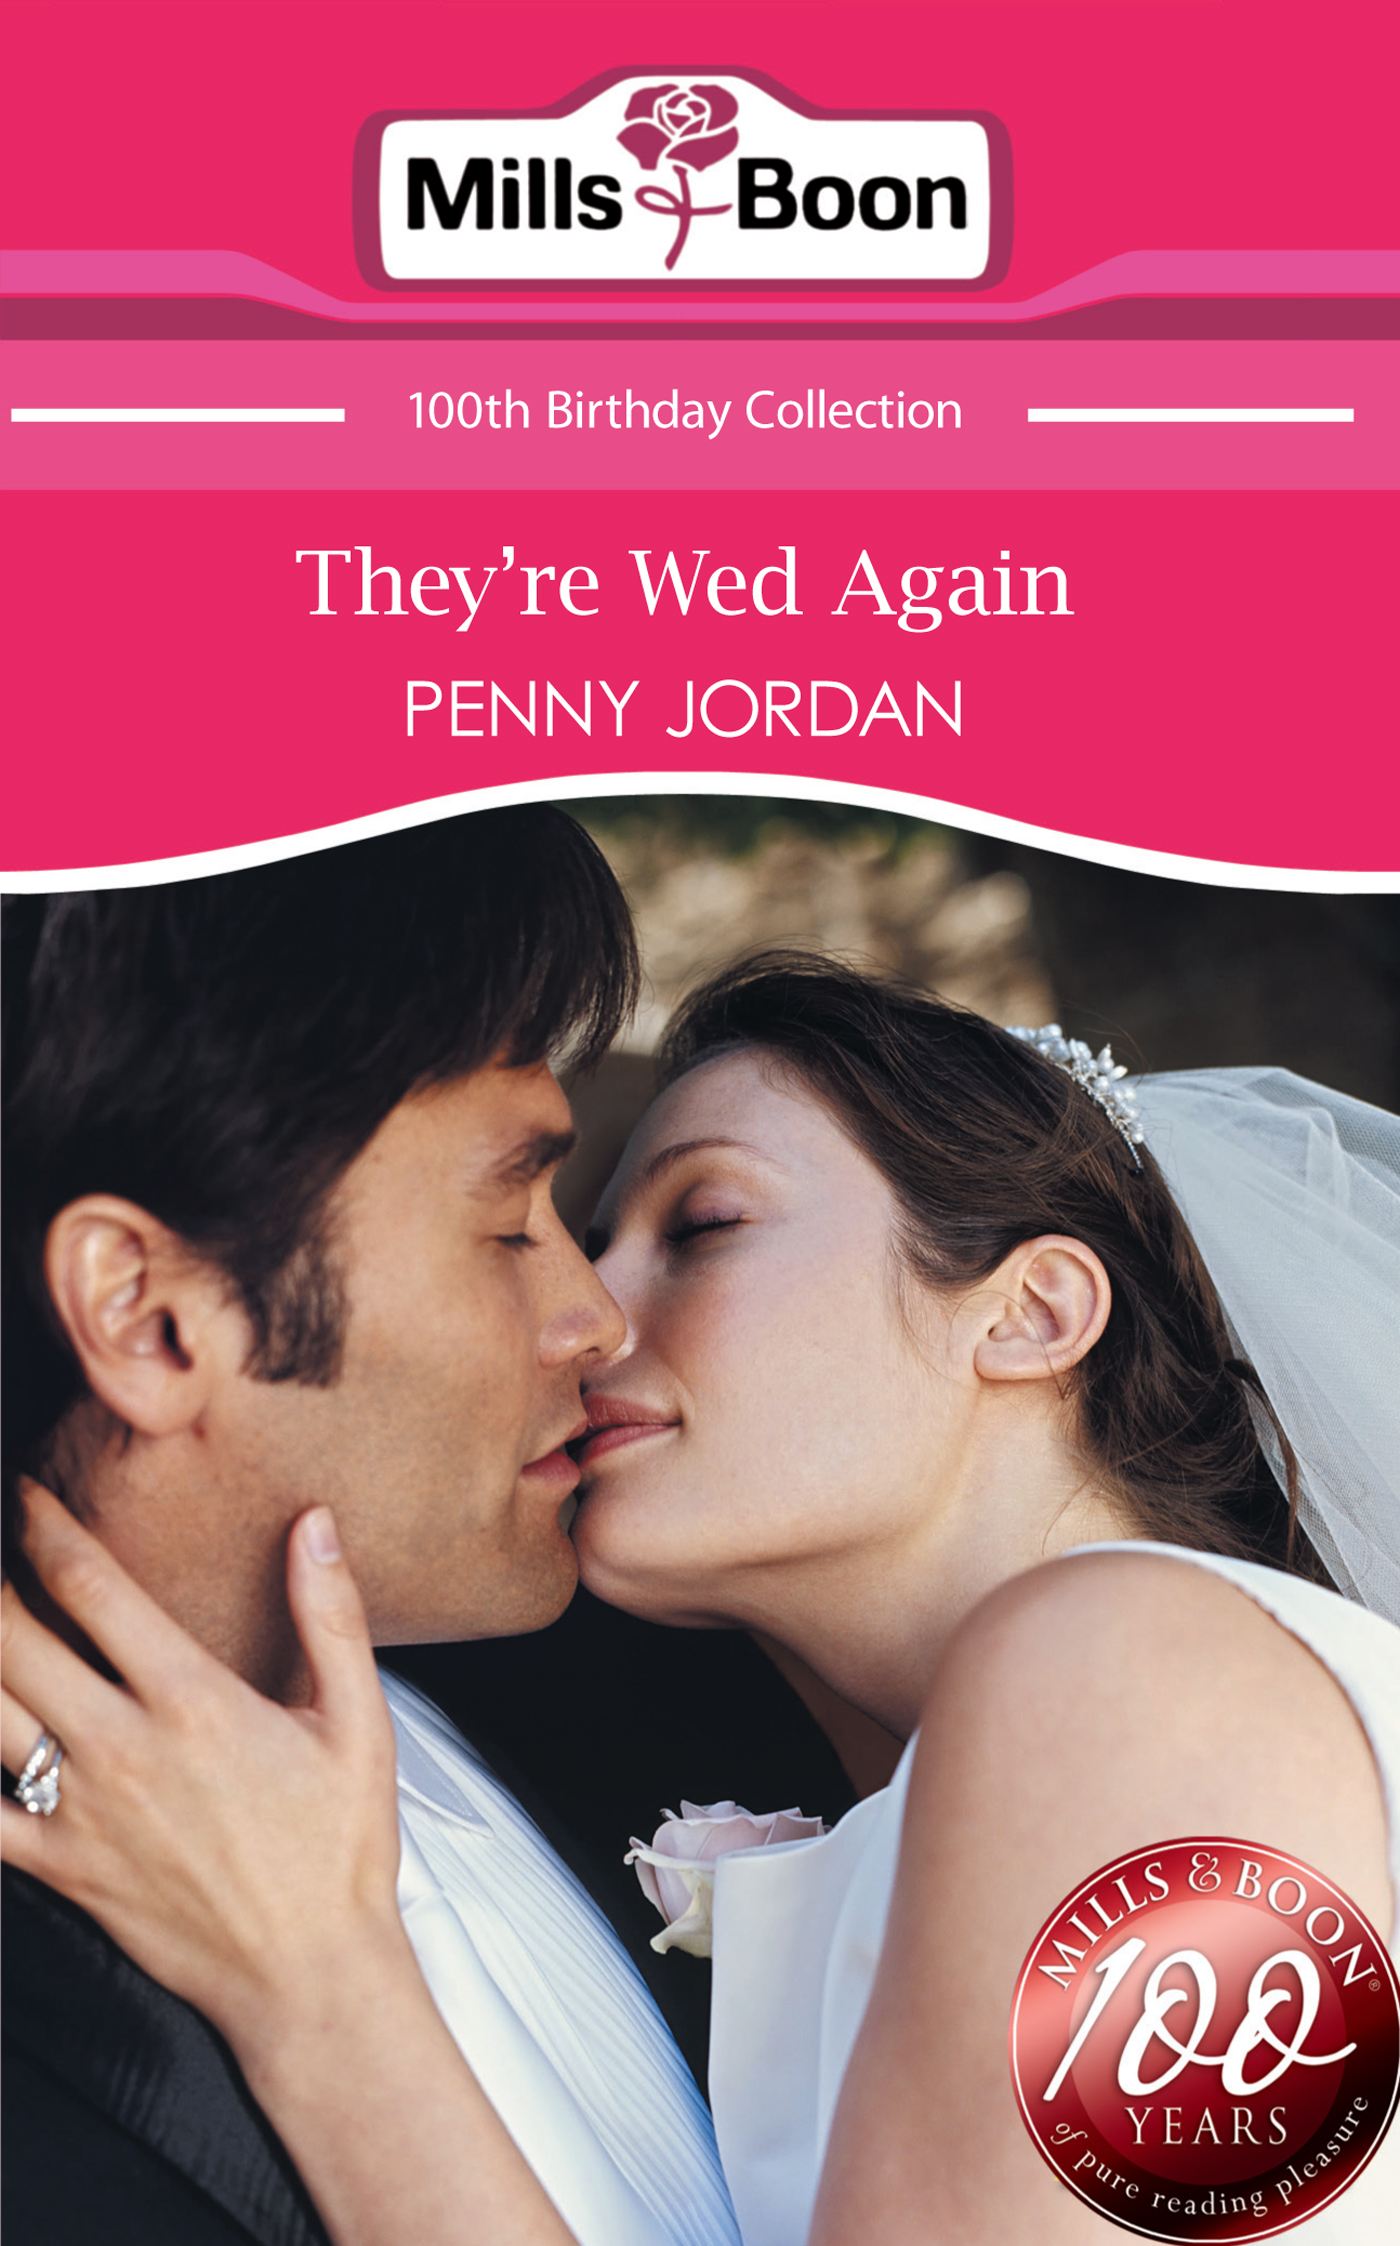 They're Wed Again (Mills & Boon Short Stories)